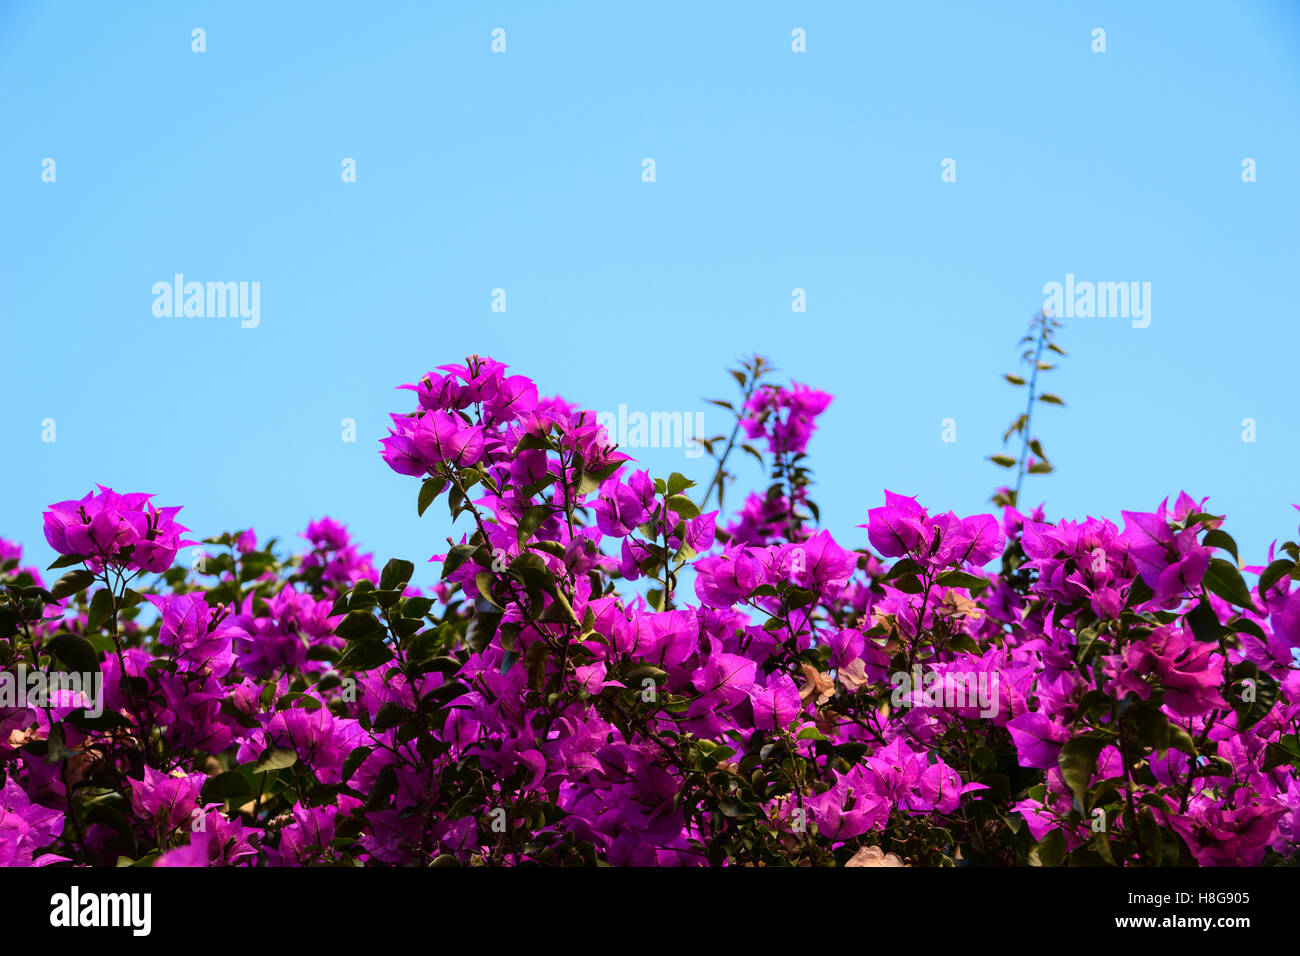 Bougainvillea against blue sky - Stock Image